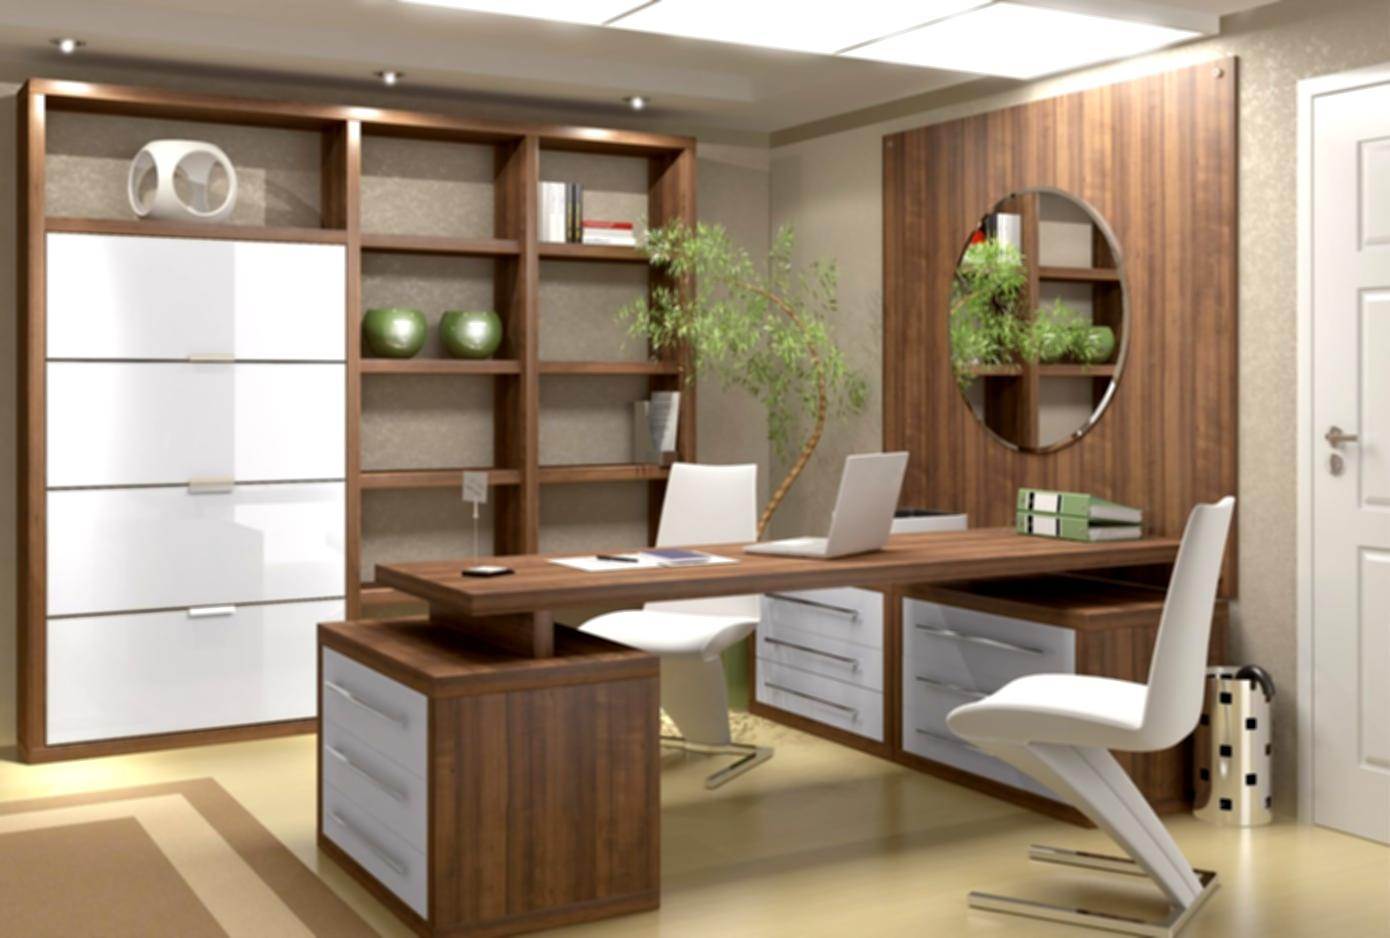 Home office furniture Picture from: Home office furniture collections Wood QQJBHLW